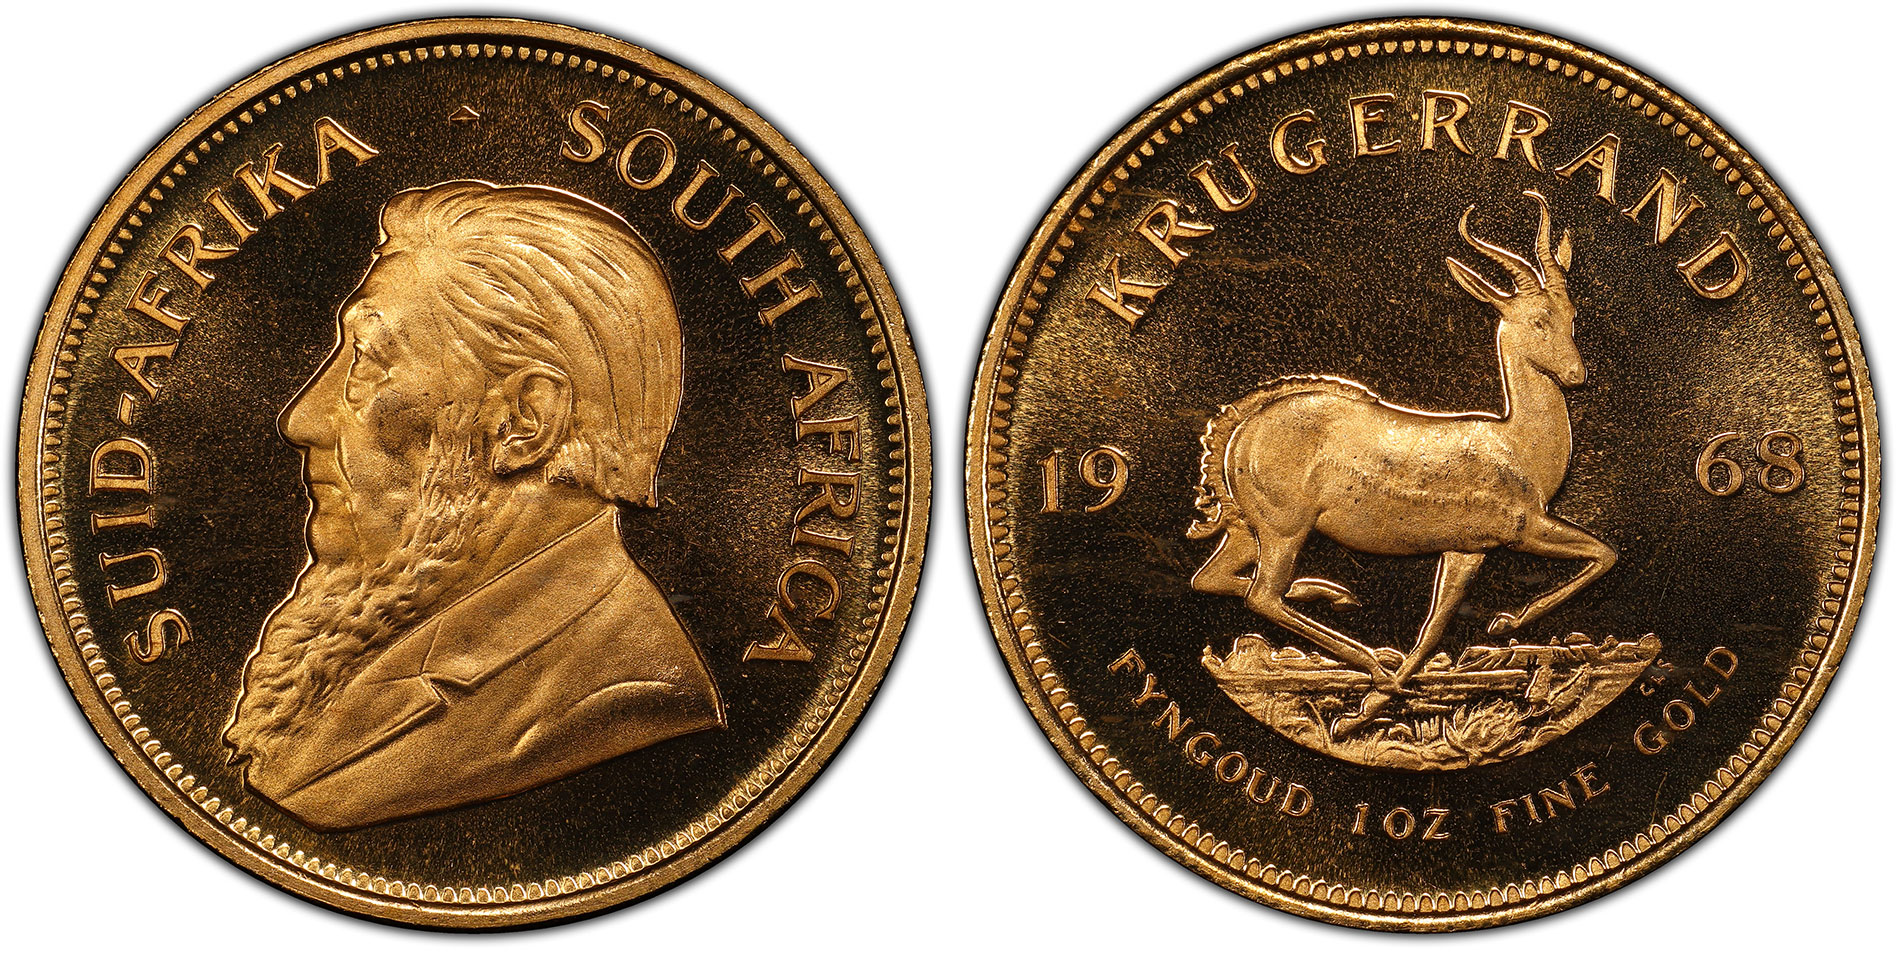 South Africa 1968 Krugerrand Proof Double Frosted PCGS PR68DCAM